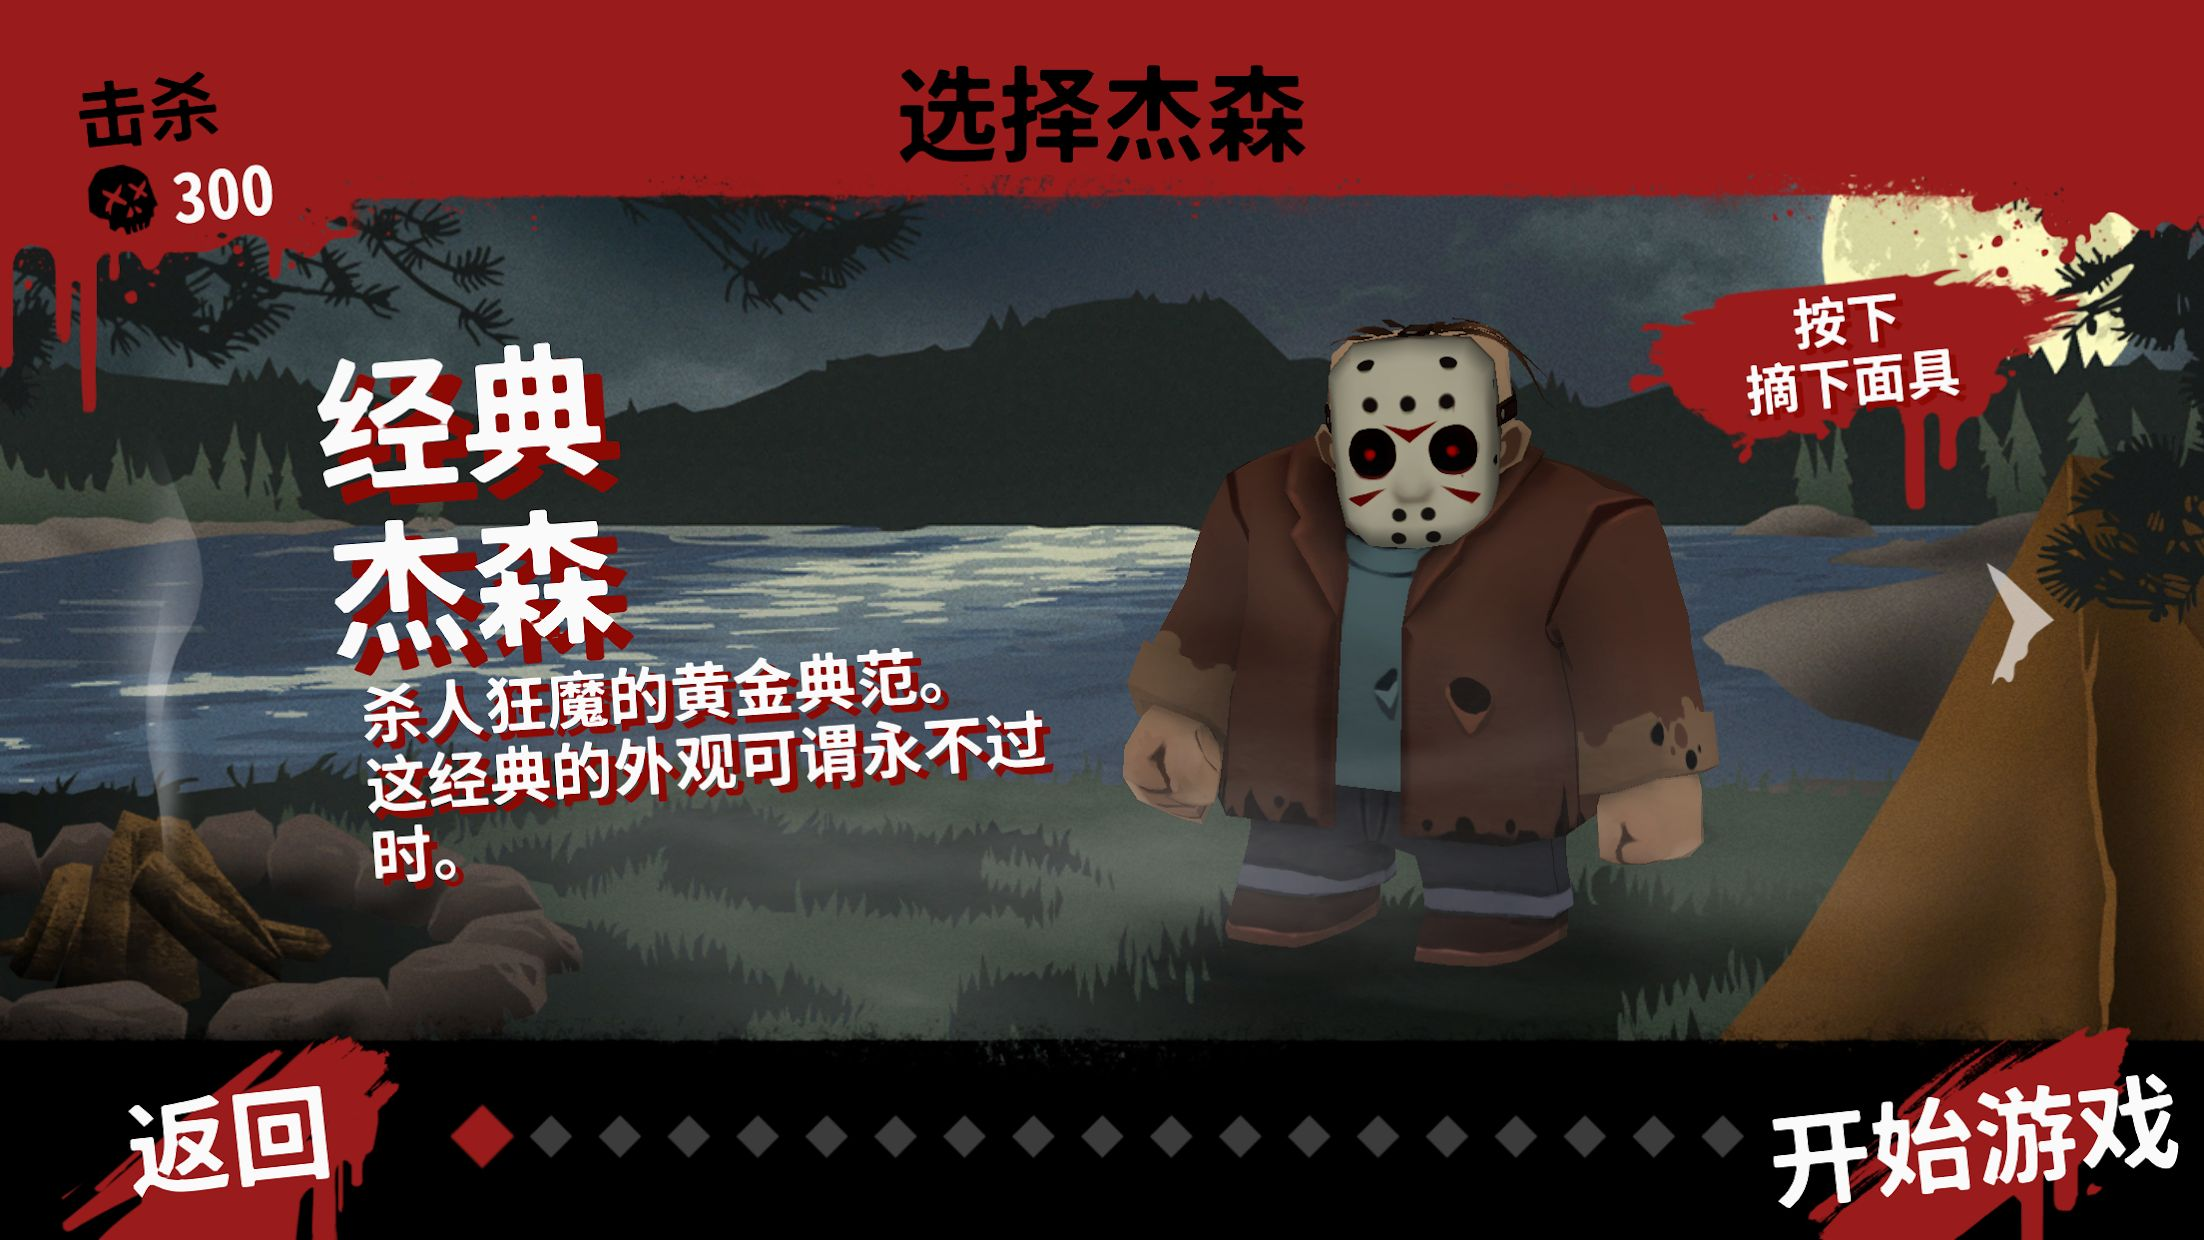 Friday the 13th: 杀手游戏 游戏截图3